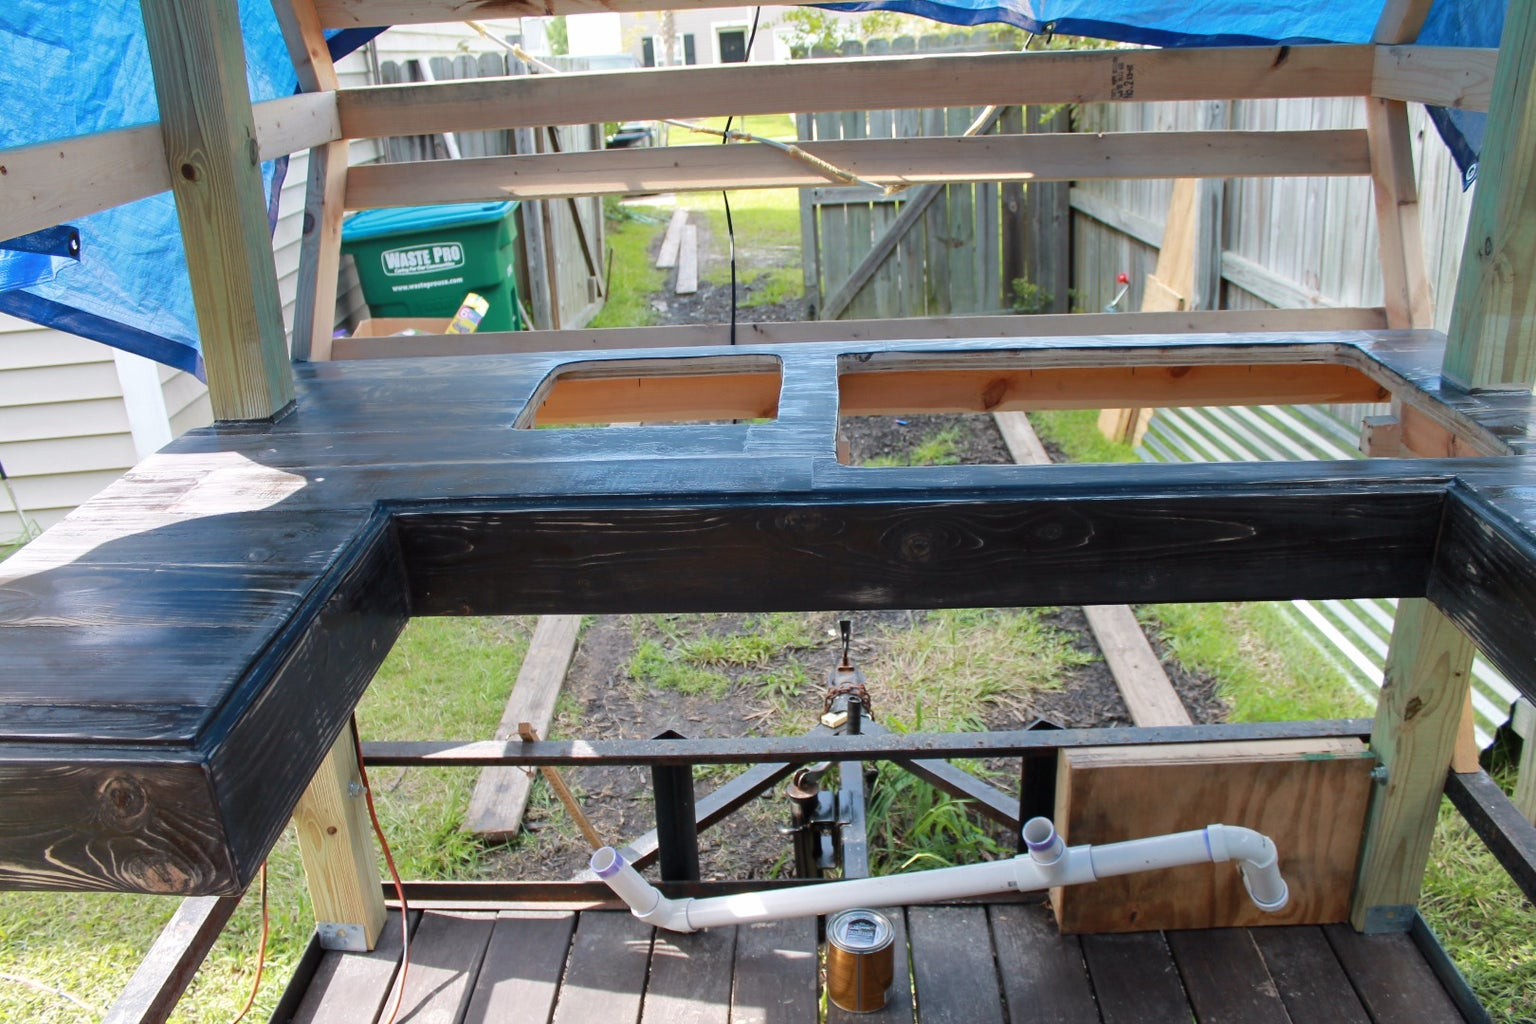 Building the Countertop, Hand Sink, and Dish Sink Area